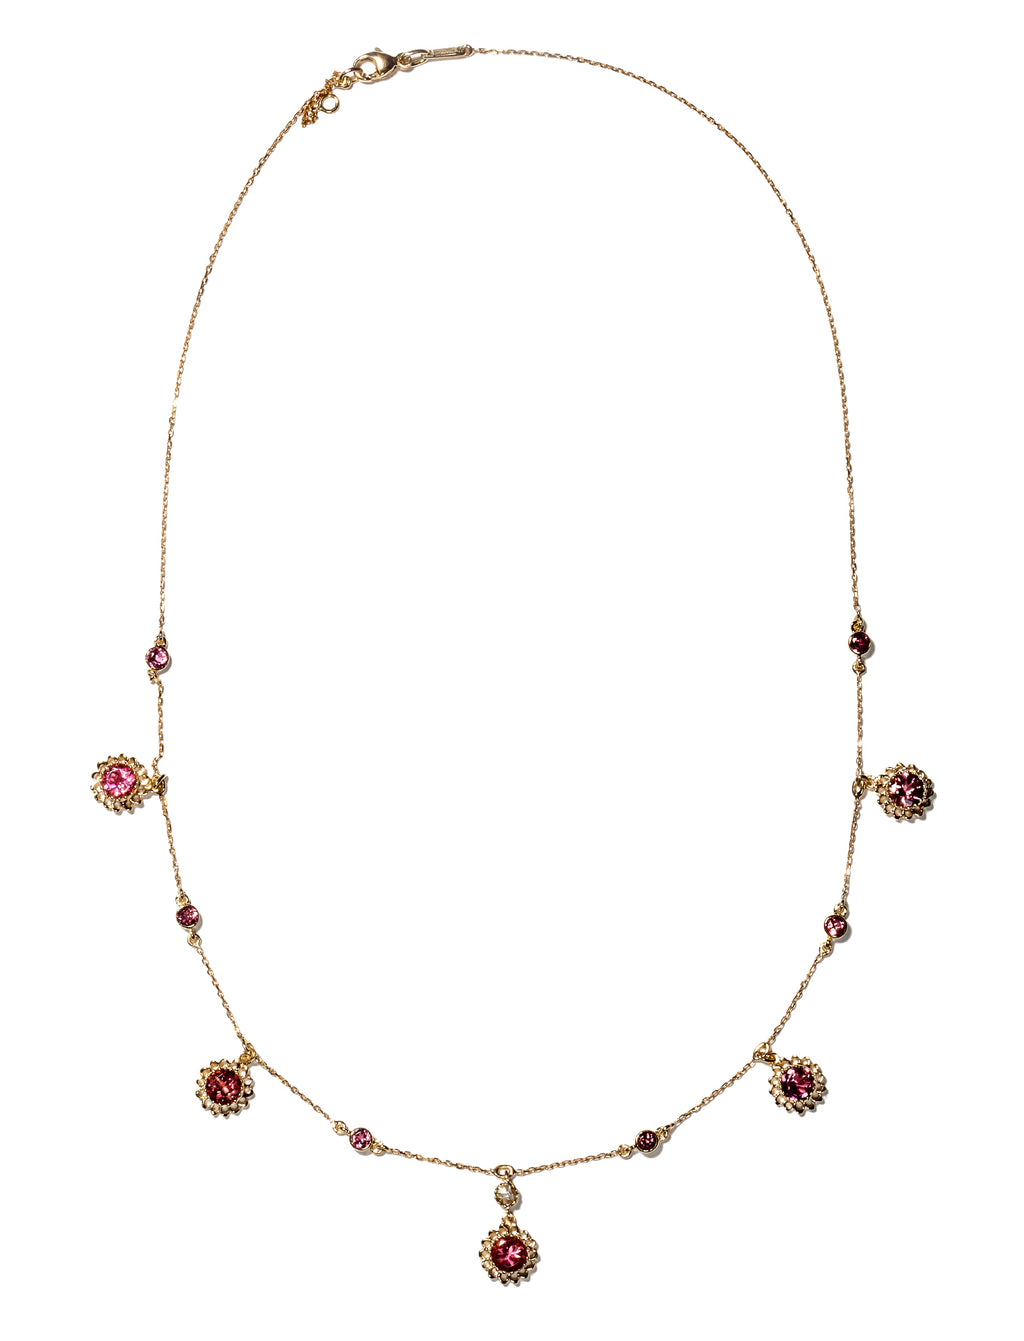 Aghabani Necklace with Pink Tourmalines, Diamonds and Floral Motif